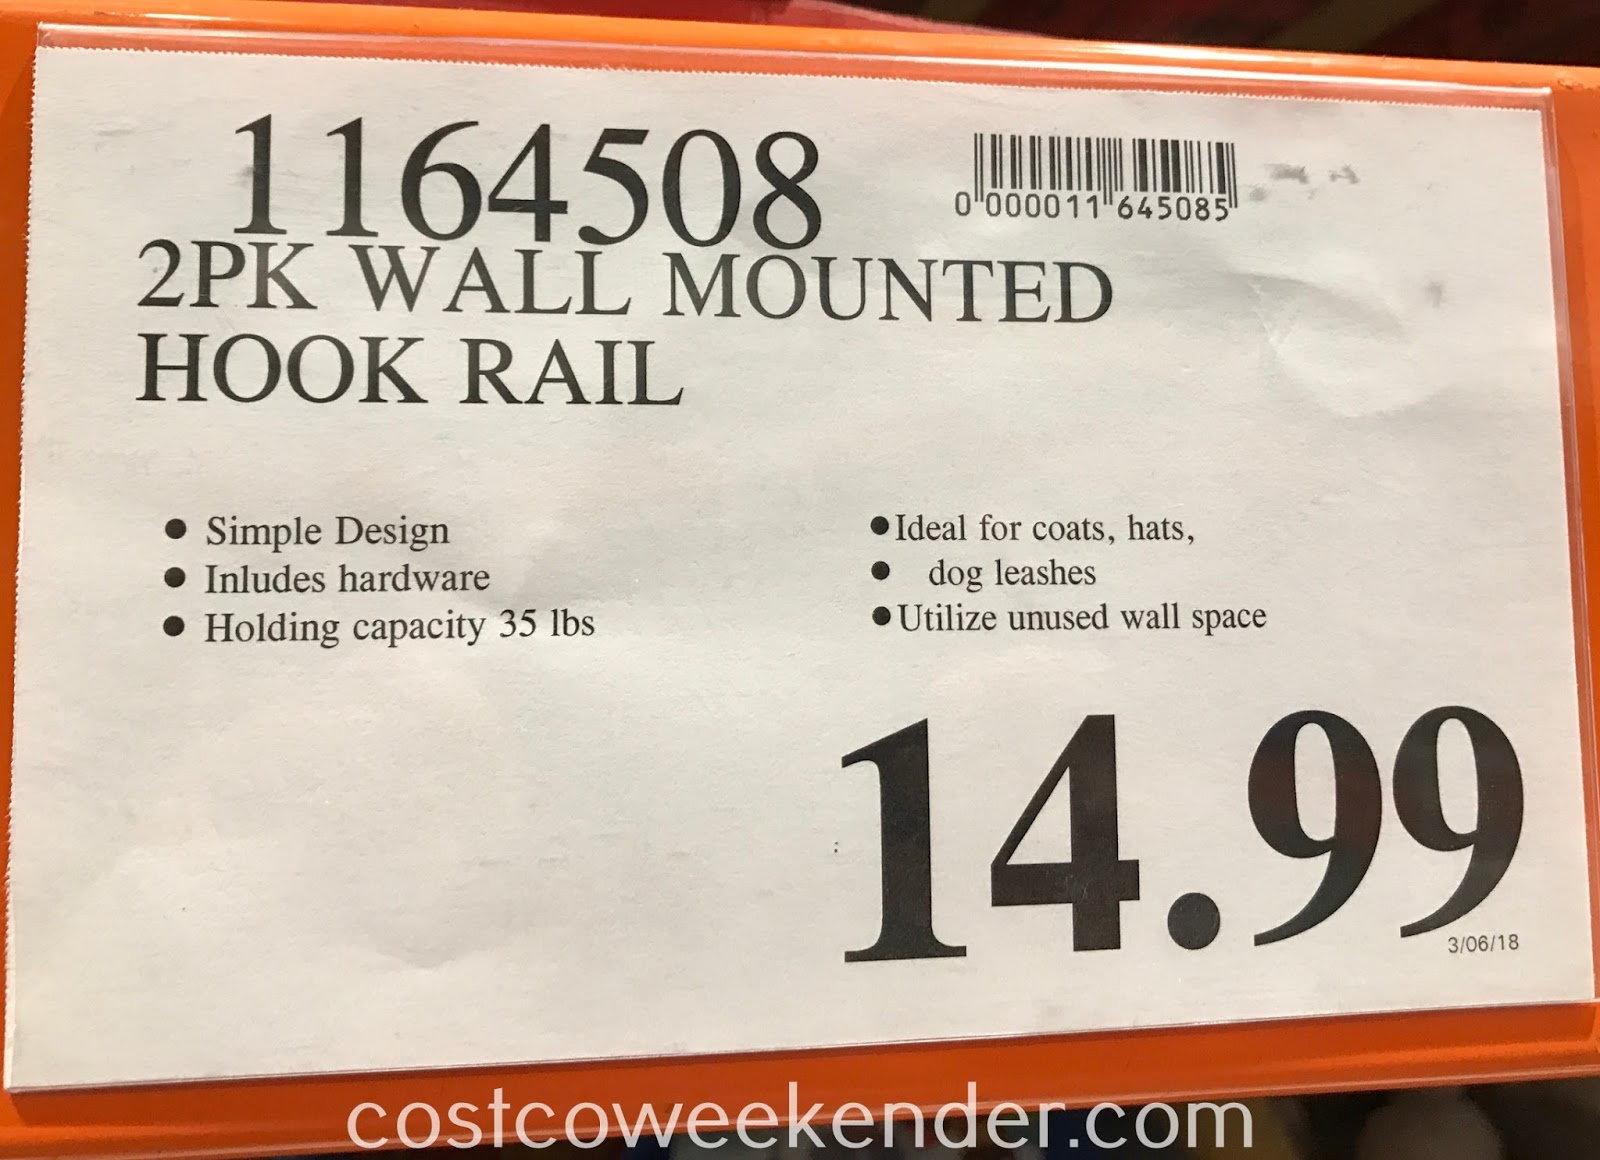 Deal for a 2 pack of Birdrock Home Wall Mounted Hook Rails at Costco